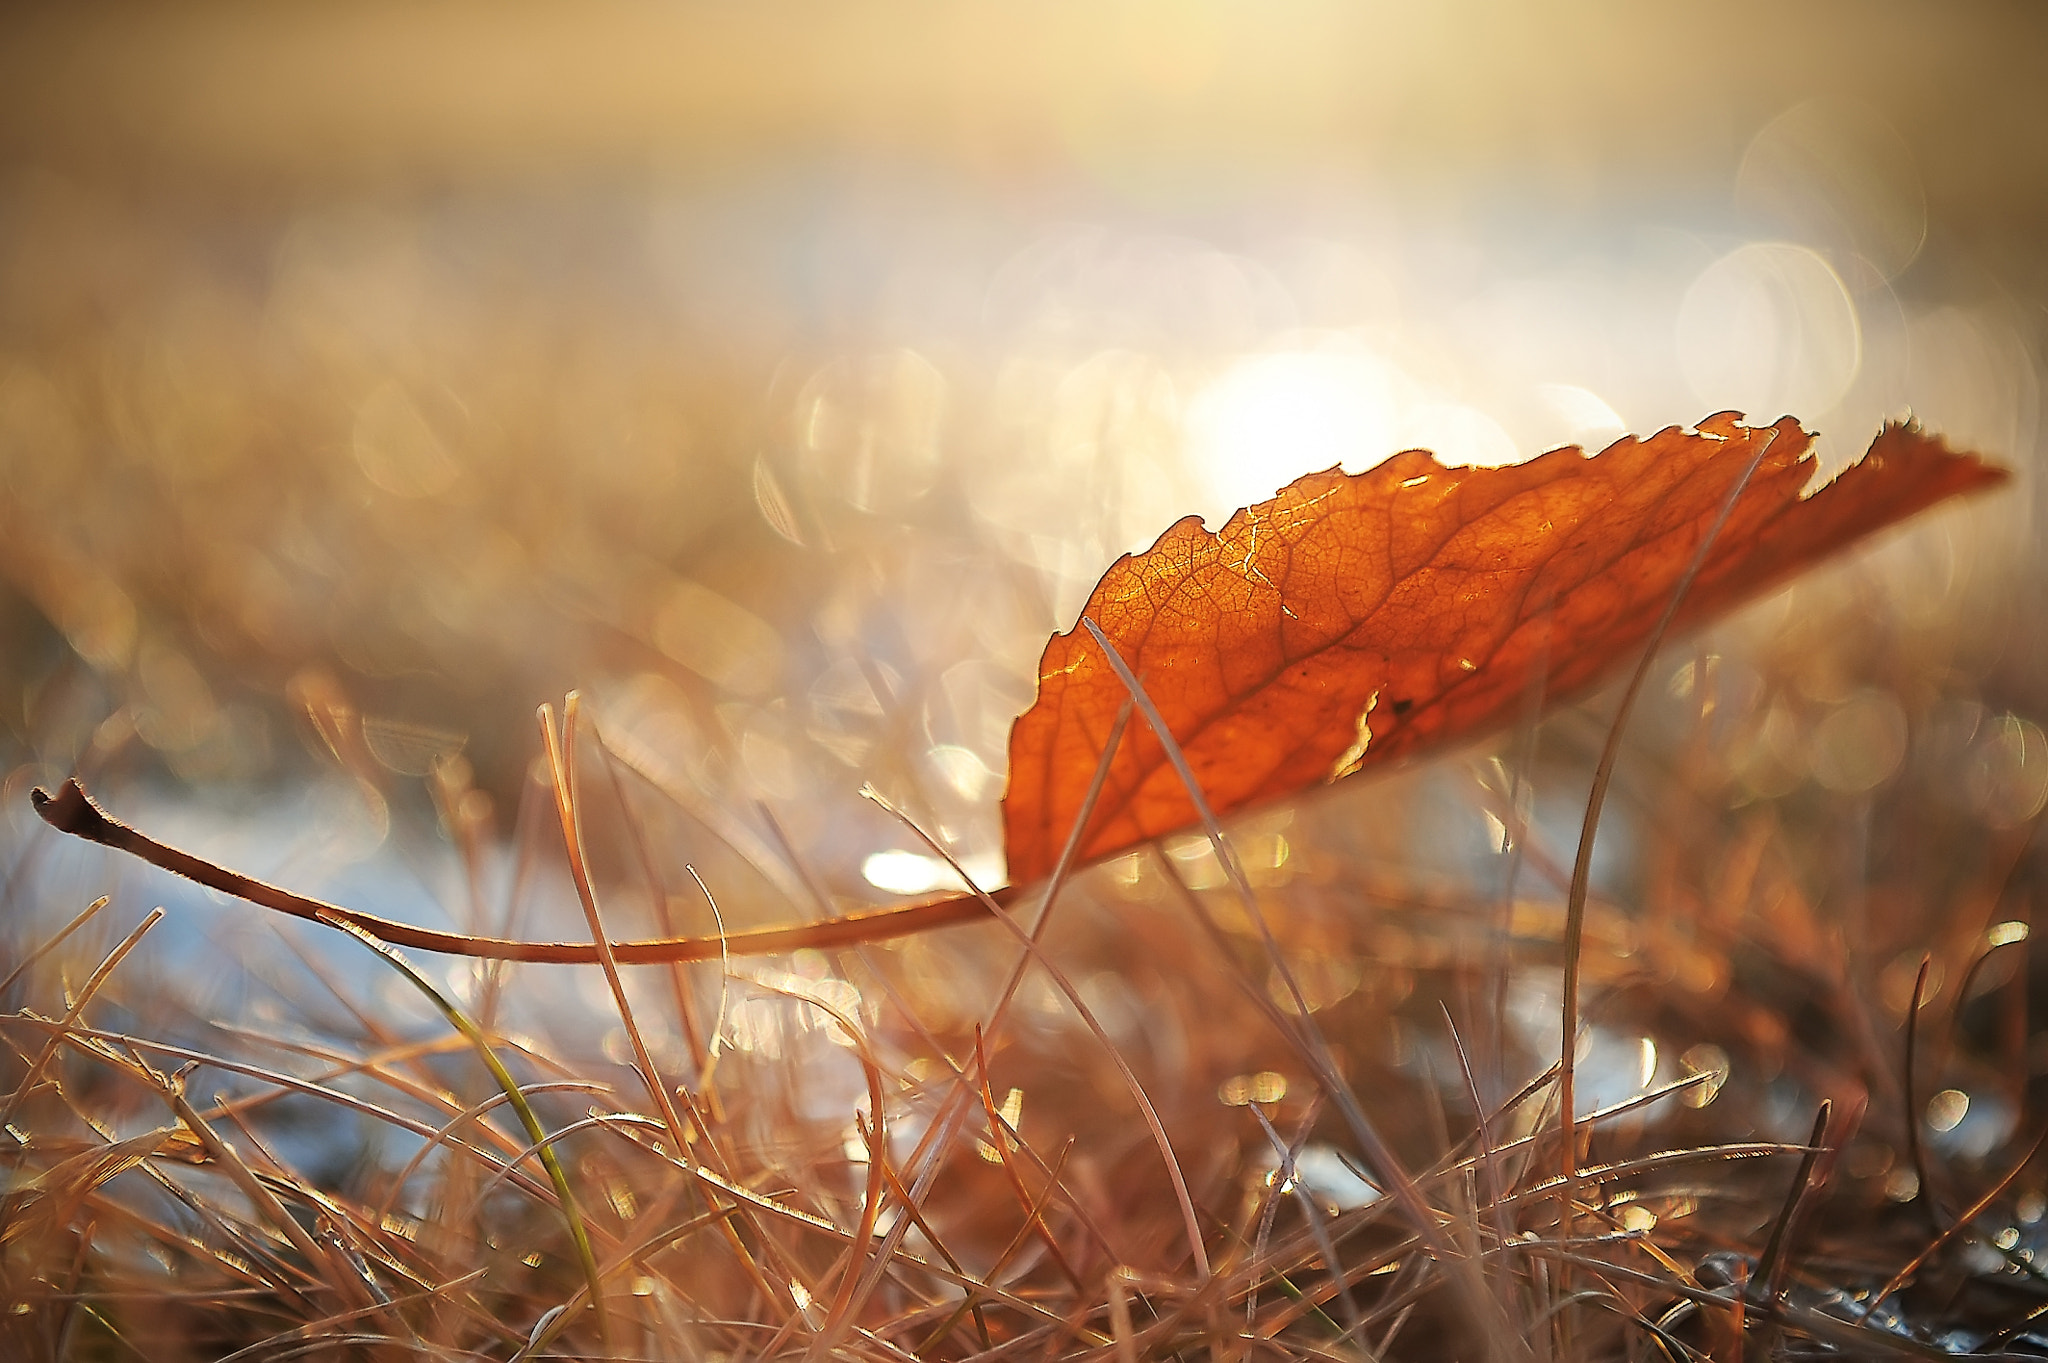 Photograph Red leaf at sunset by victor Liu on 500px